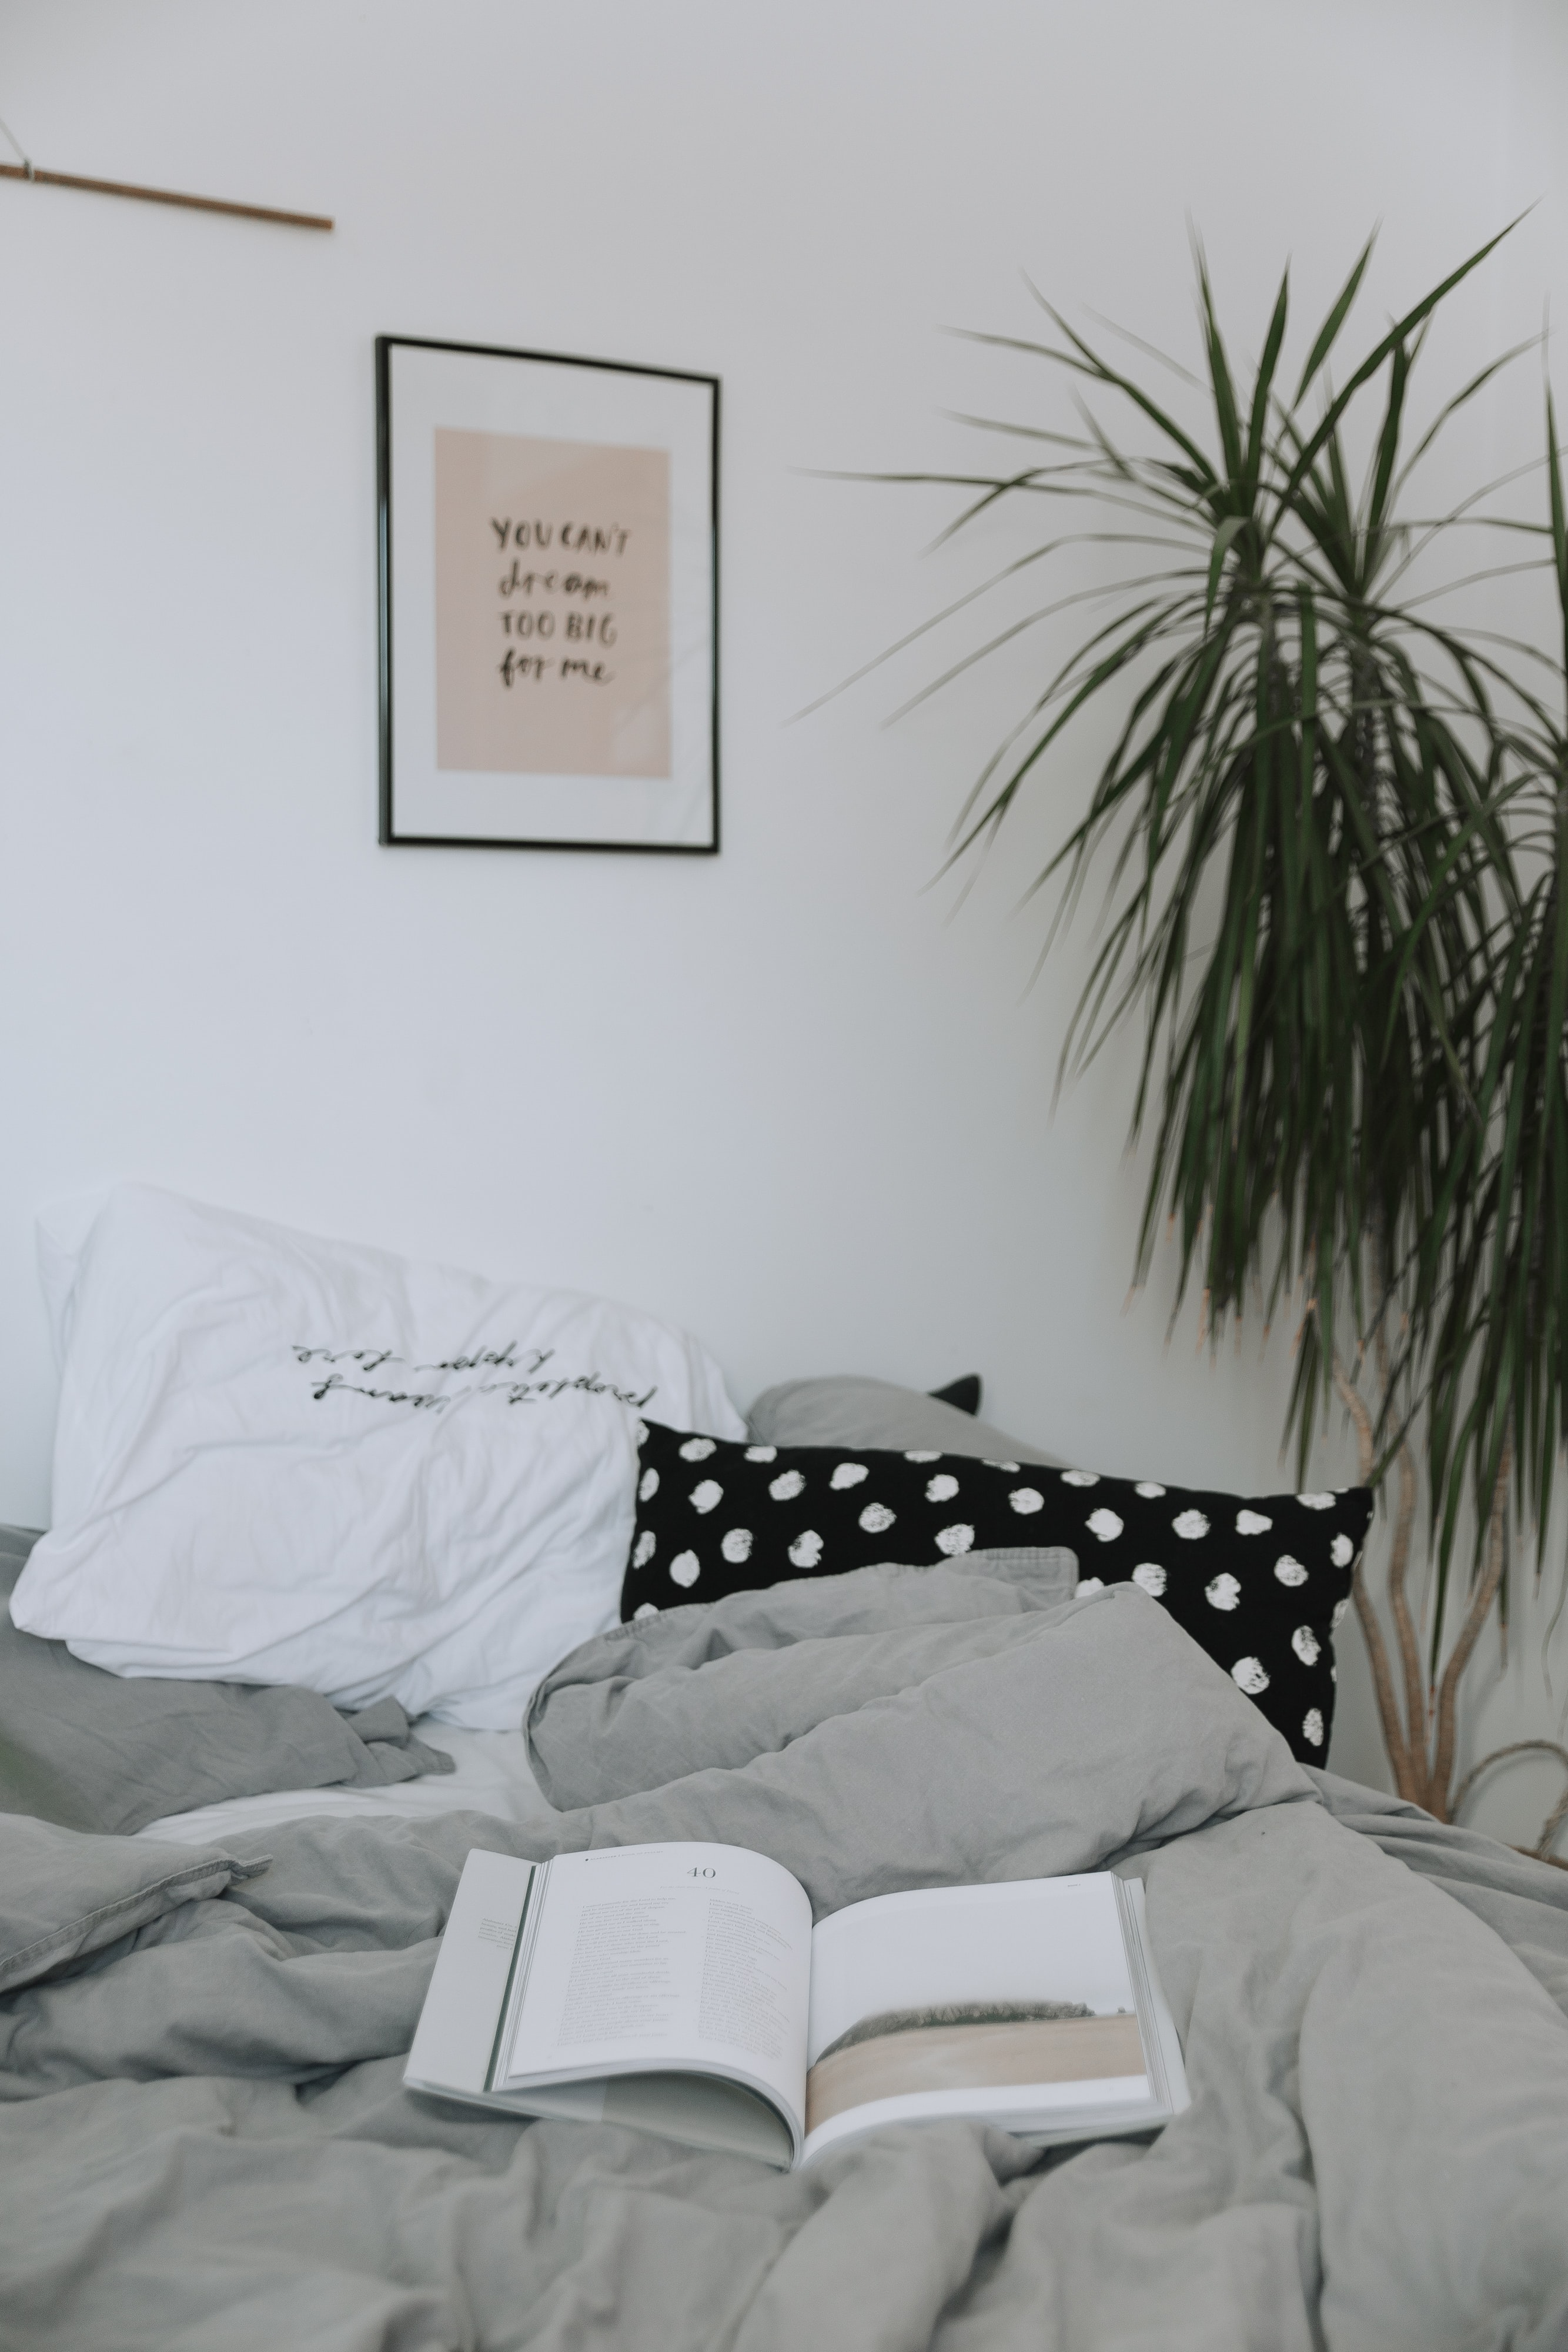 white book on gray blanket beside green-leafed plant